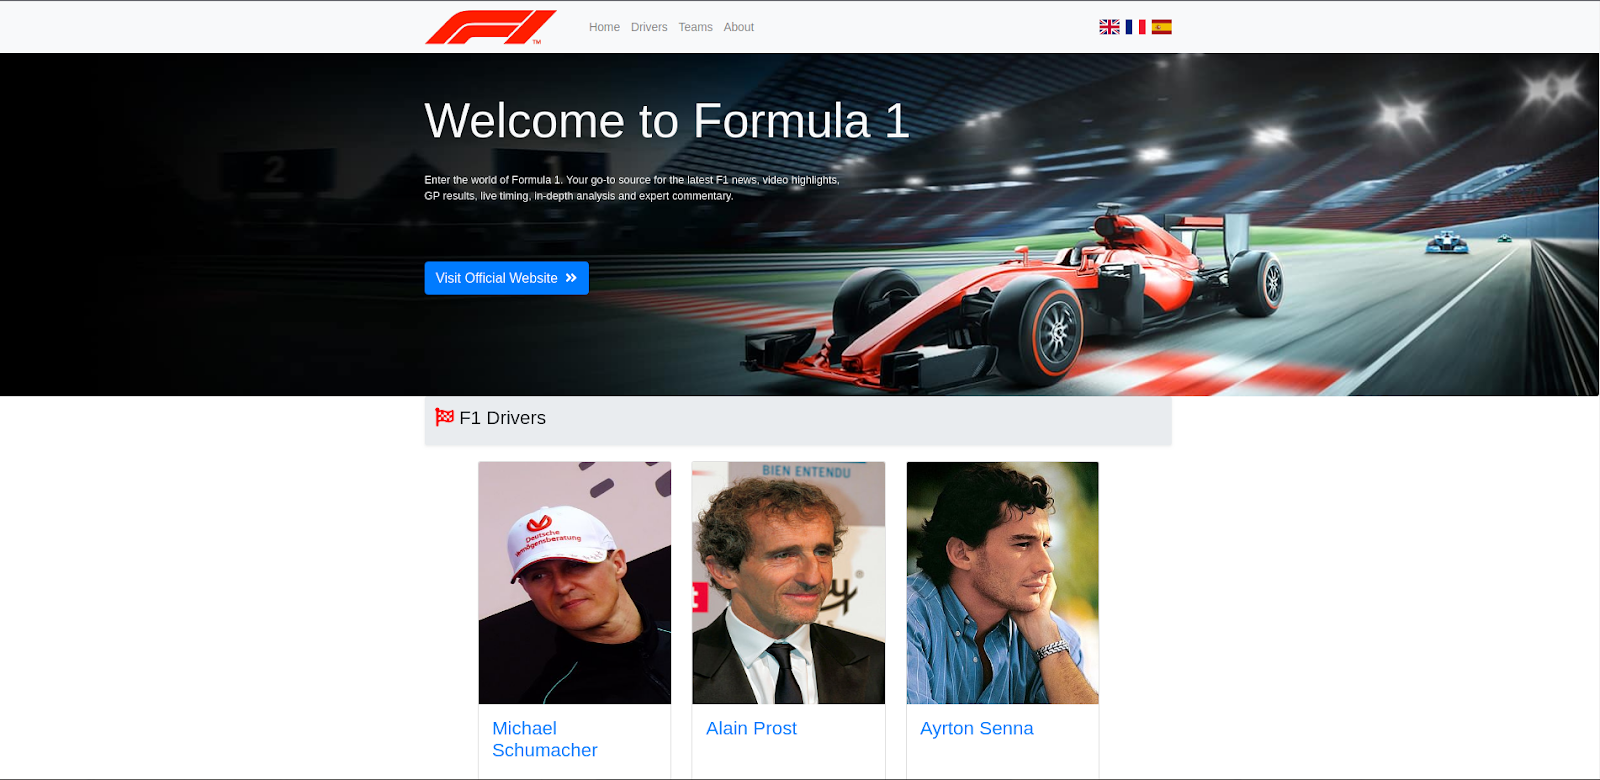 Homepage of the application